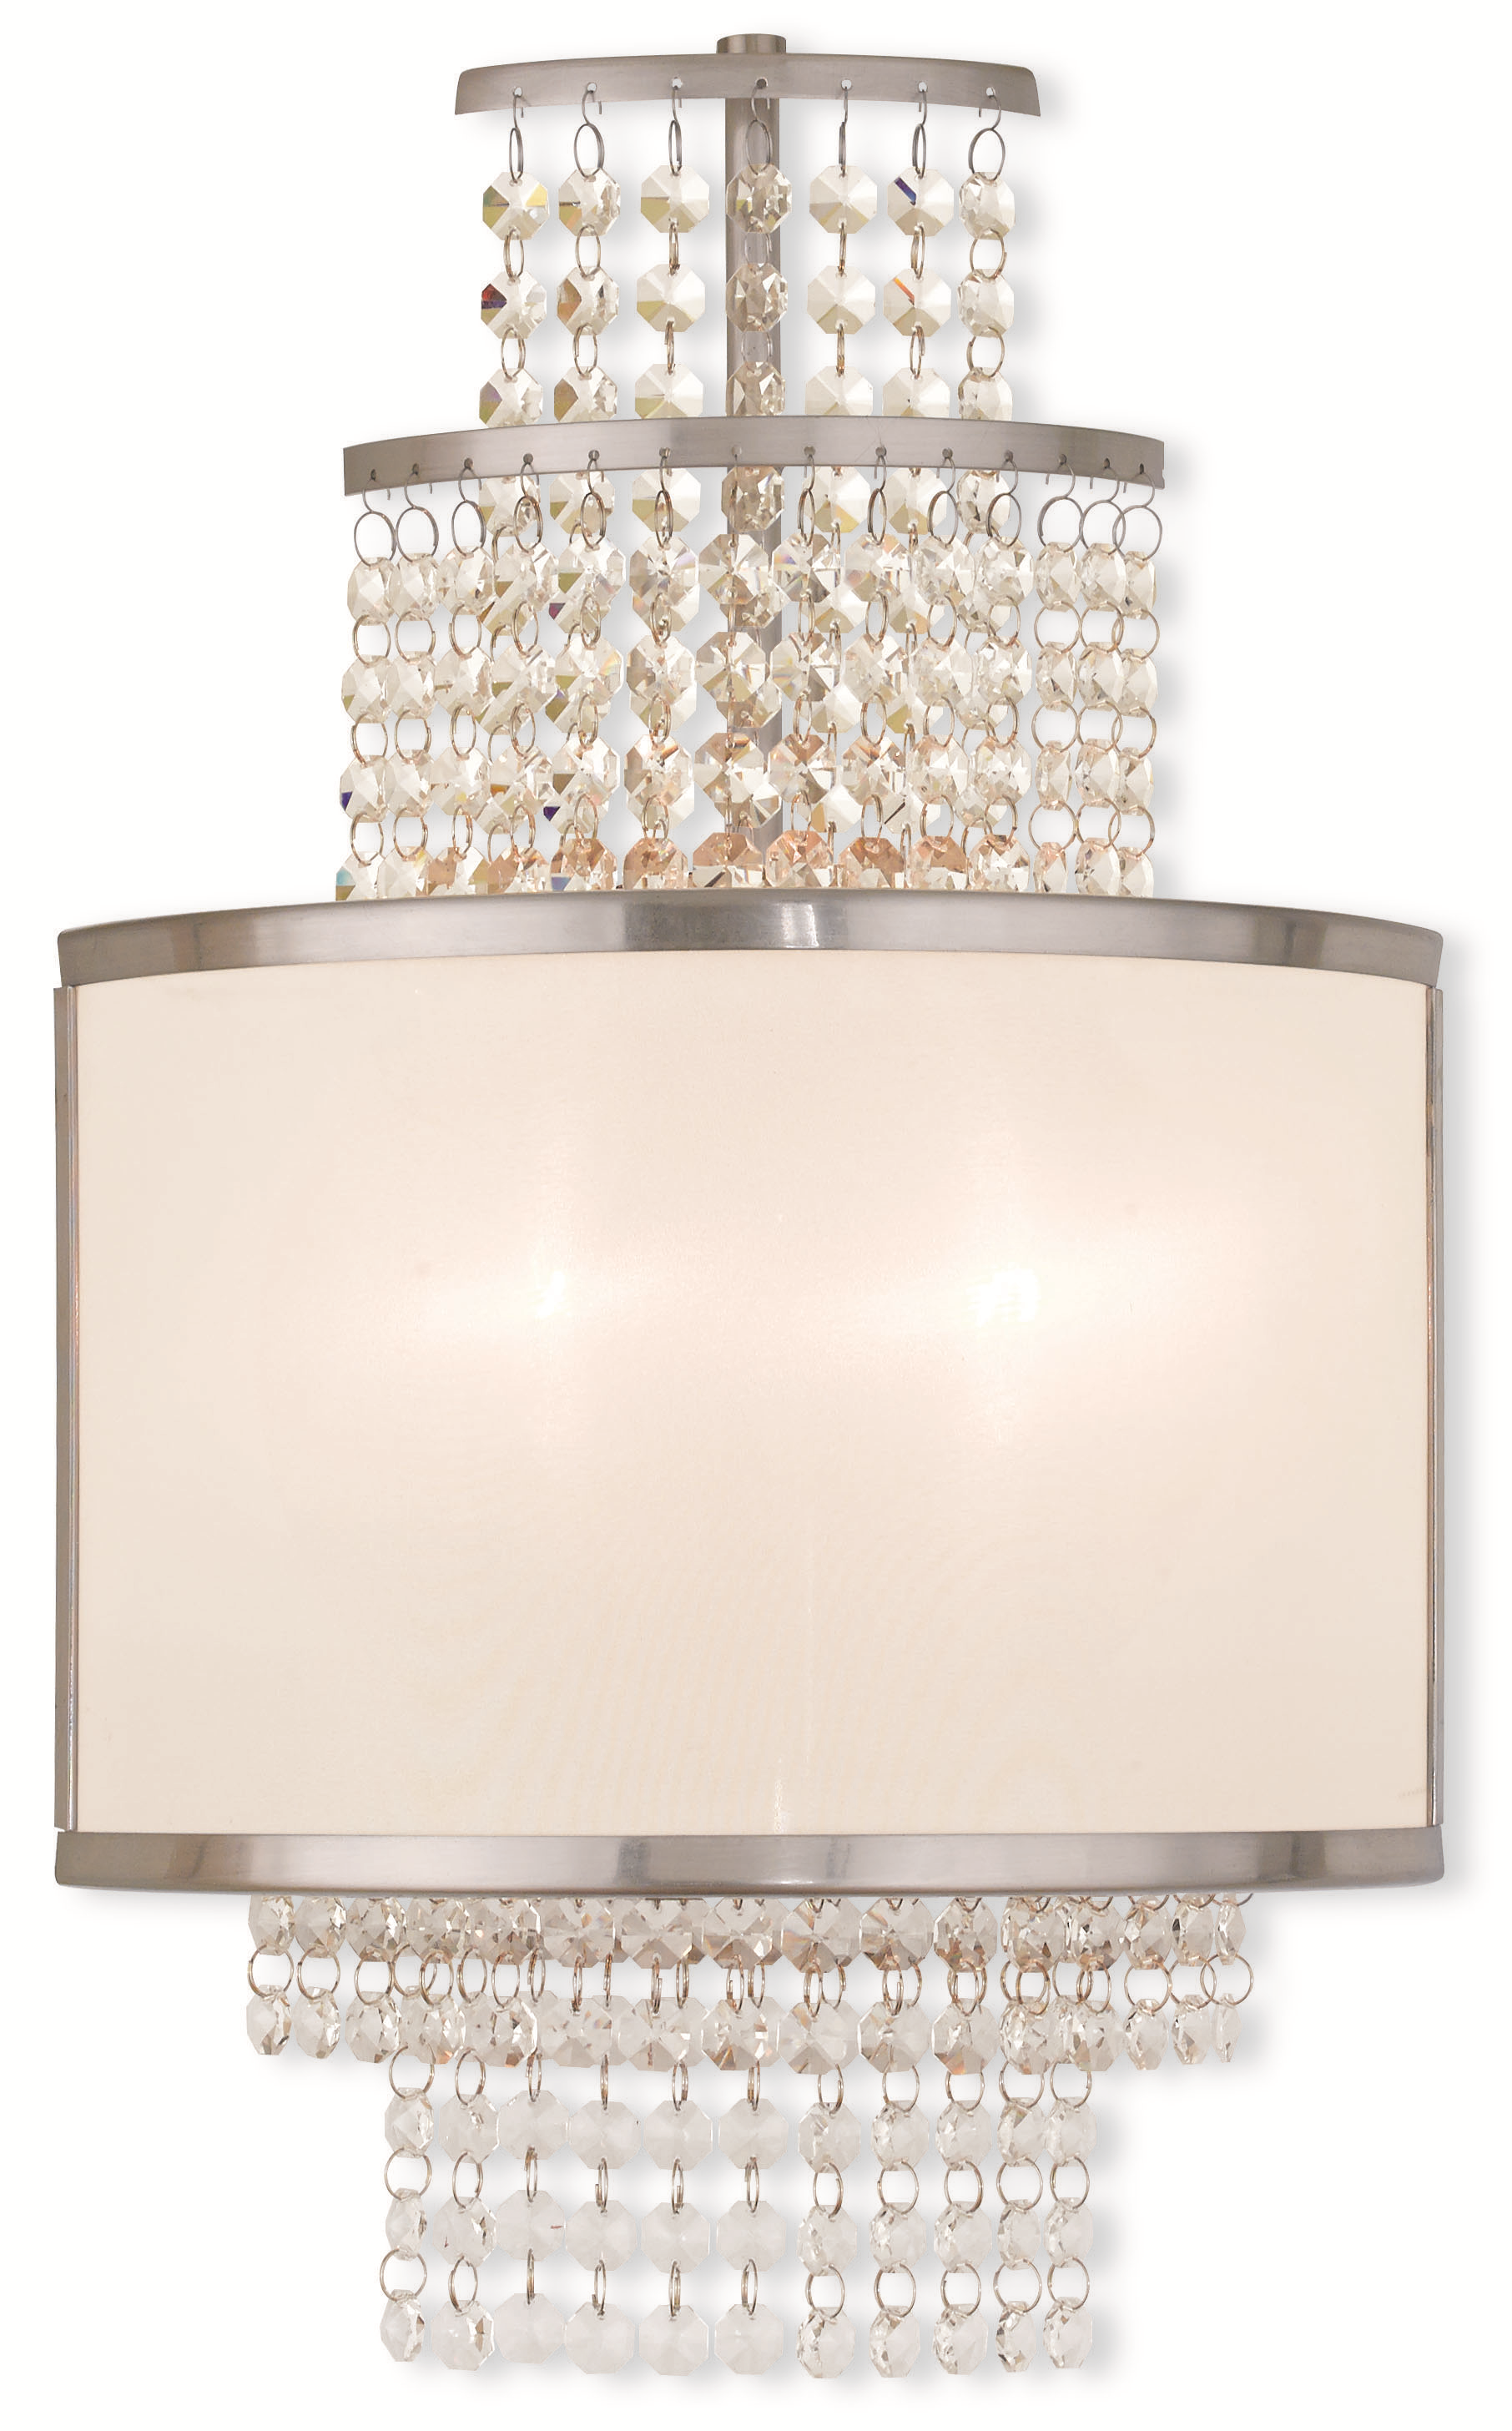 Amazing Livex Lighting 50782 91 Wall Sconce From The Prescott Collection For Home Lighting Ideas